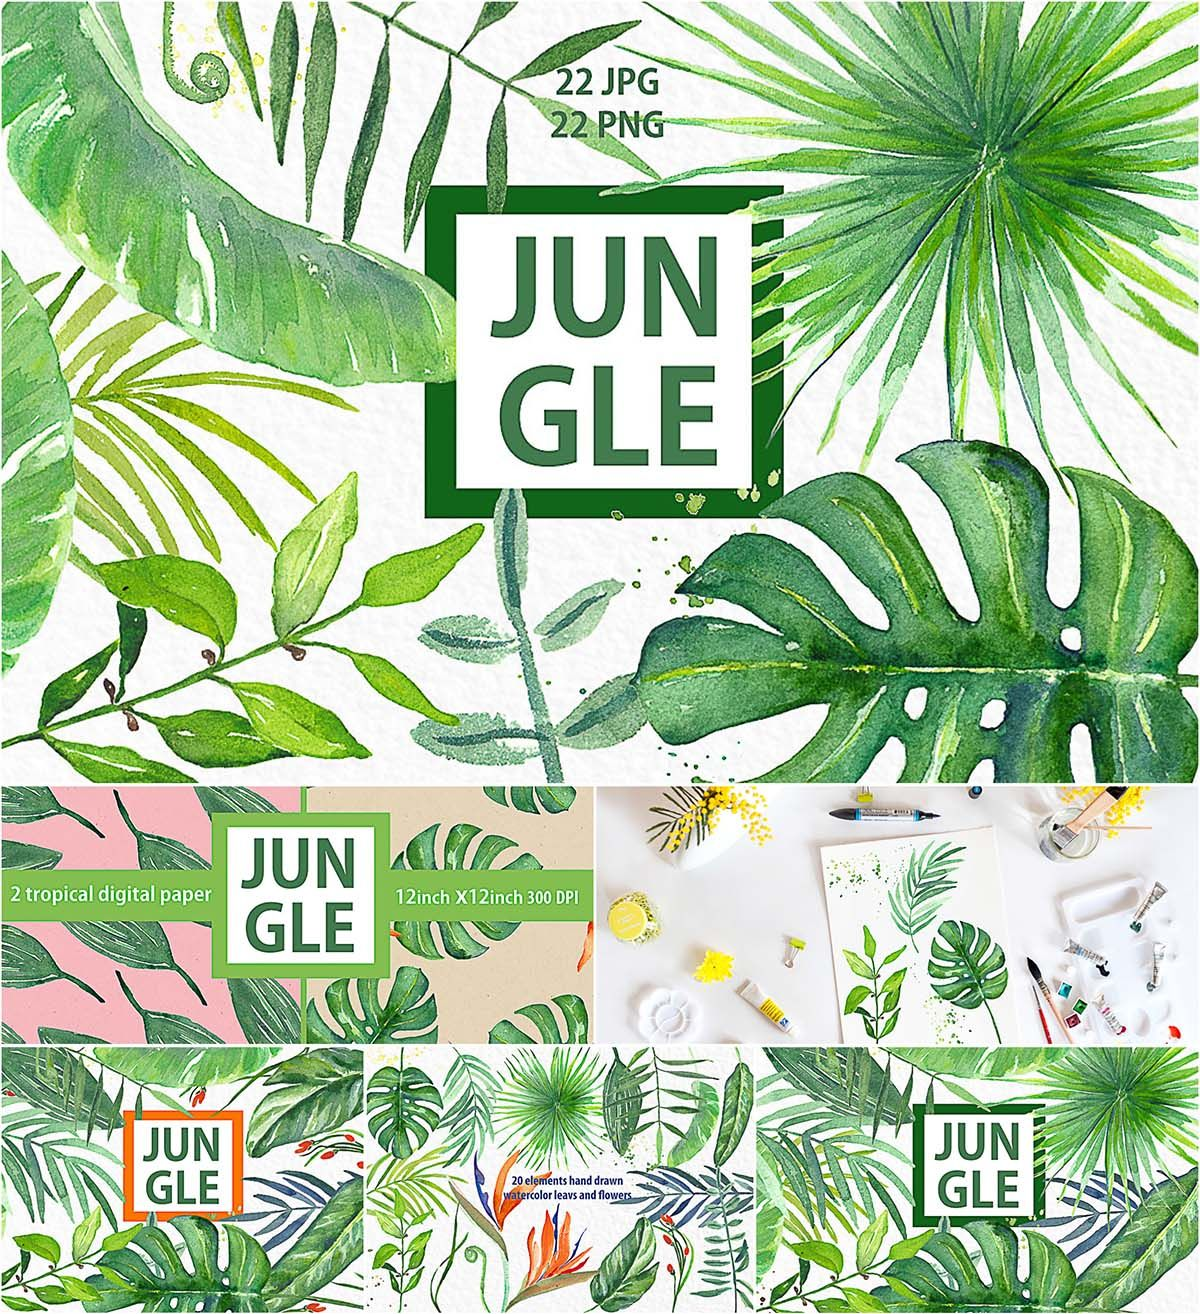 Set Of 22 Png With Tropical Jungle Hand Painted Watercolor Green Branches Leaves And Orange Flowers Perfect For Art Photography Logo Wedding